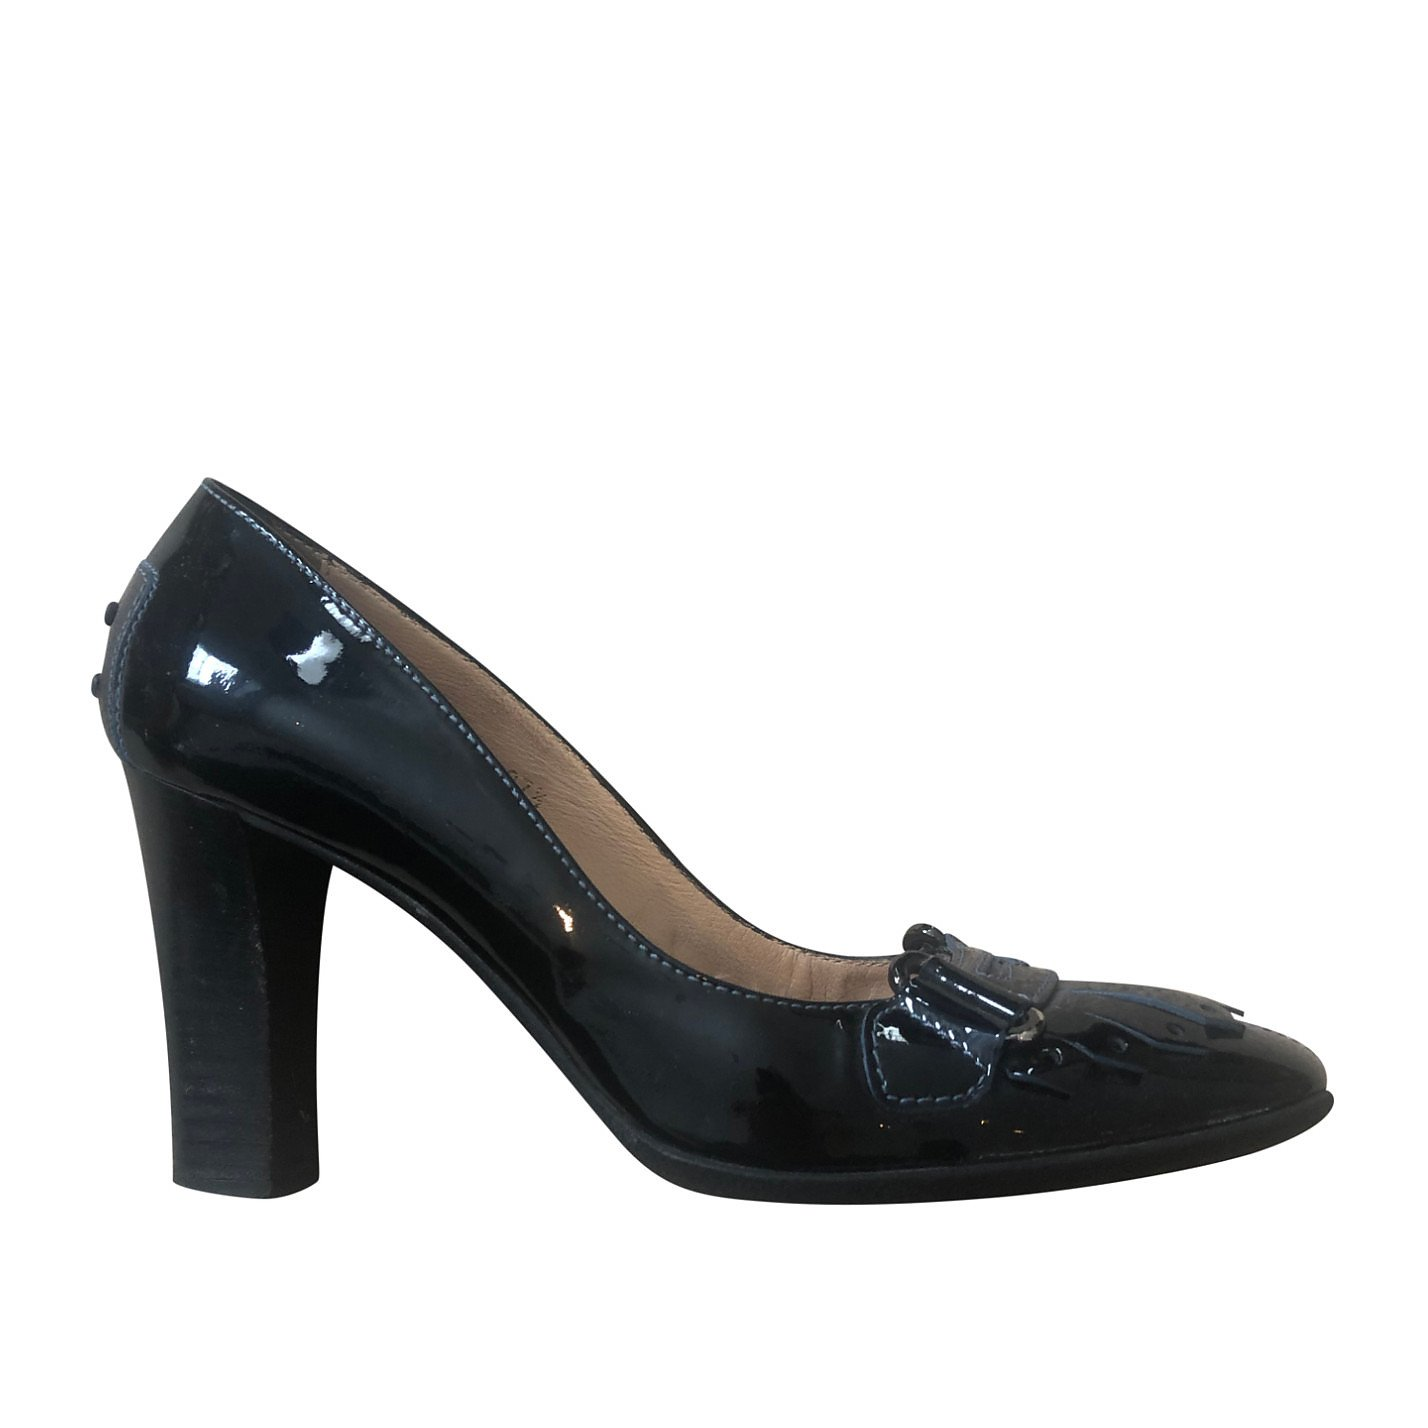 Tods Patent Loafer Pumps